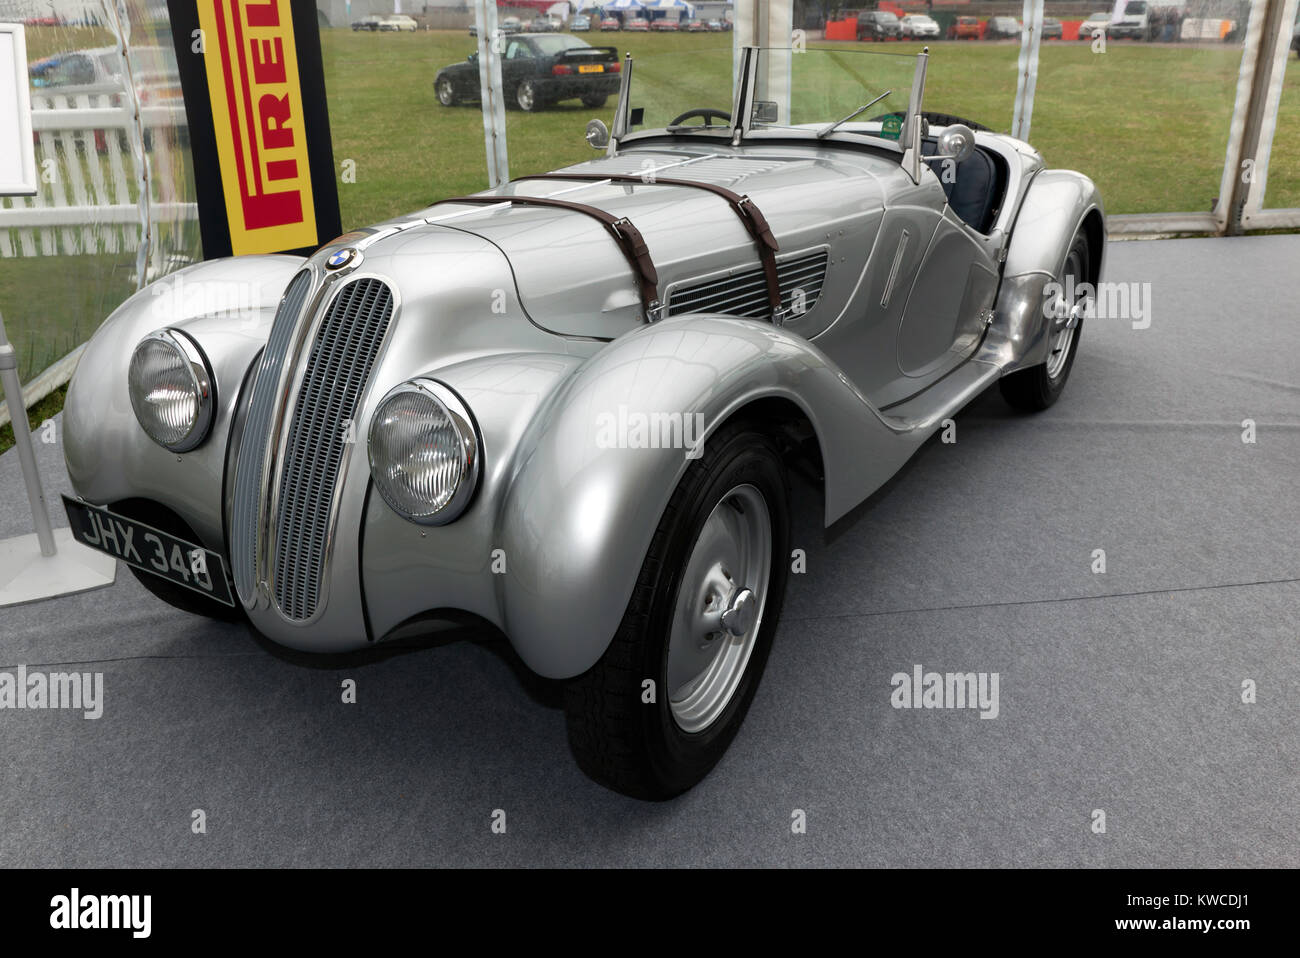 Three-quarter front view of a 1933, Silver BMW 328  on static display in the BMW Car Club of great britian Ltd zone - Stock Image